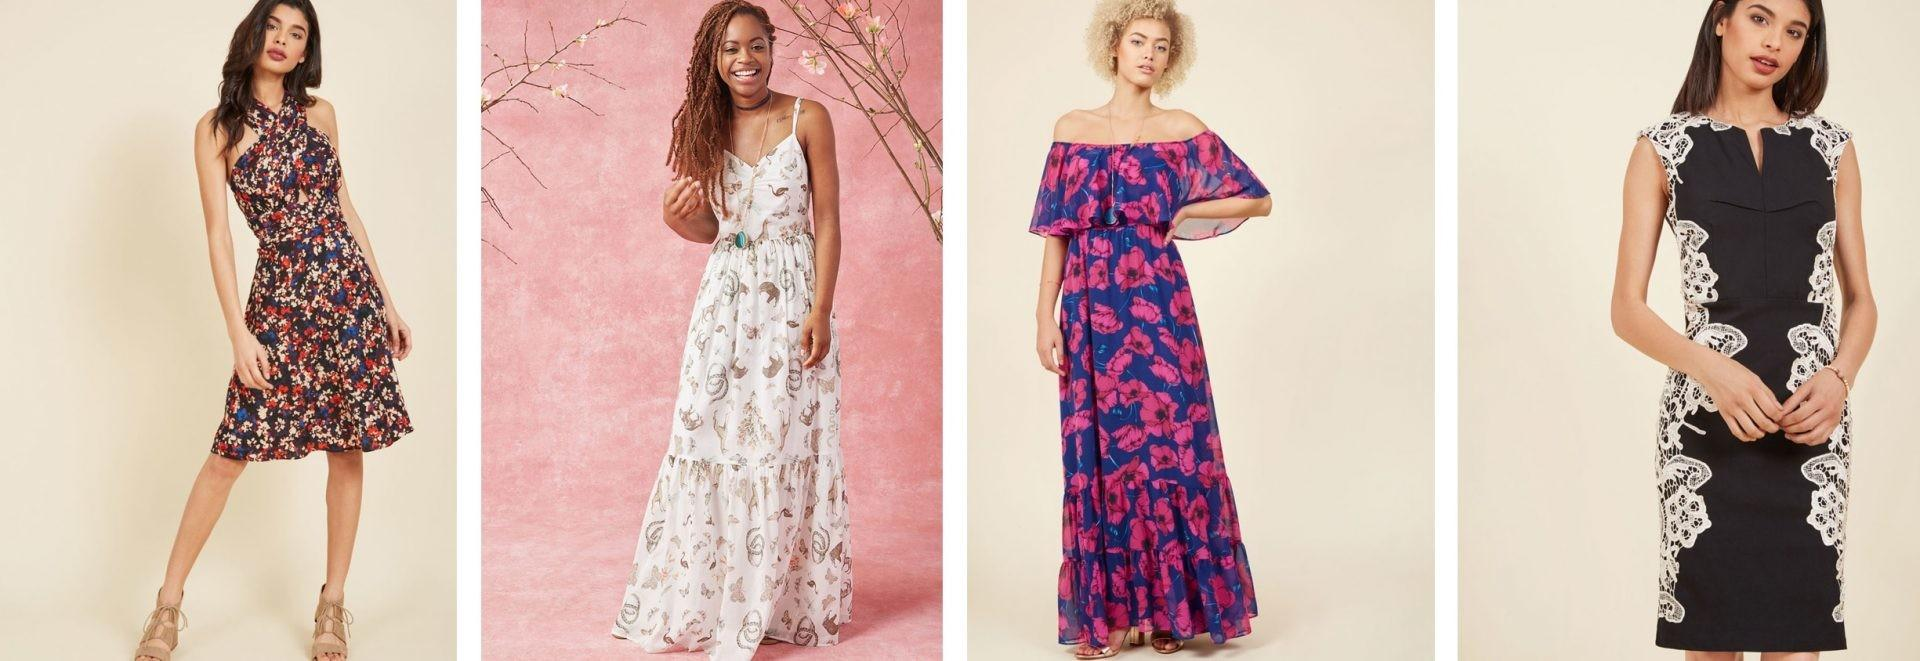 Our Top Picks Summer Fashion Must Haves